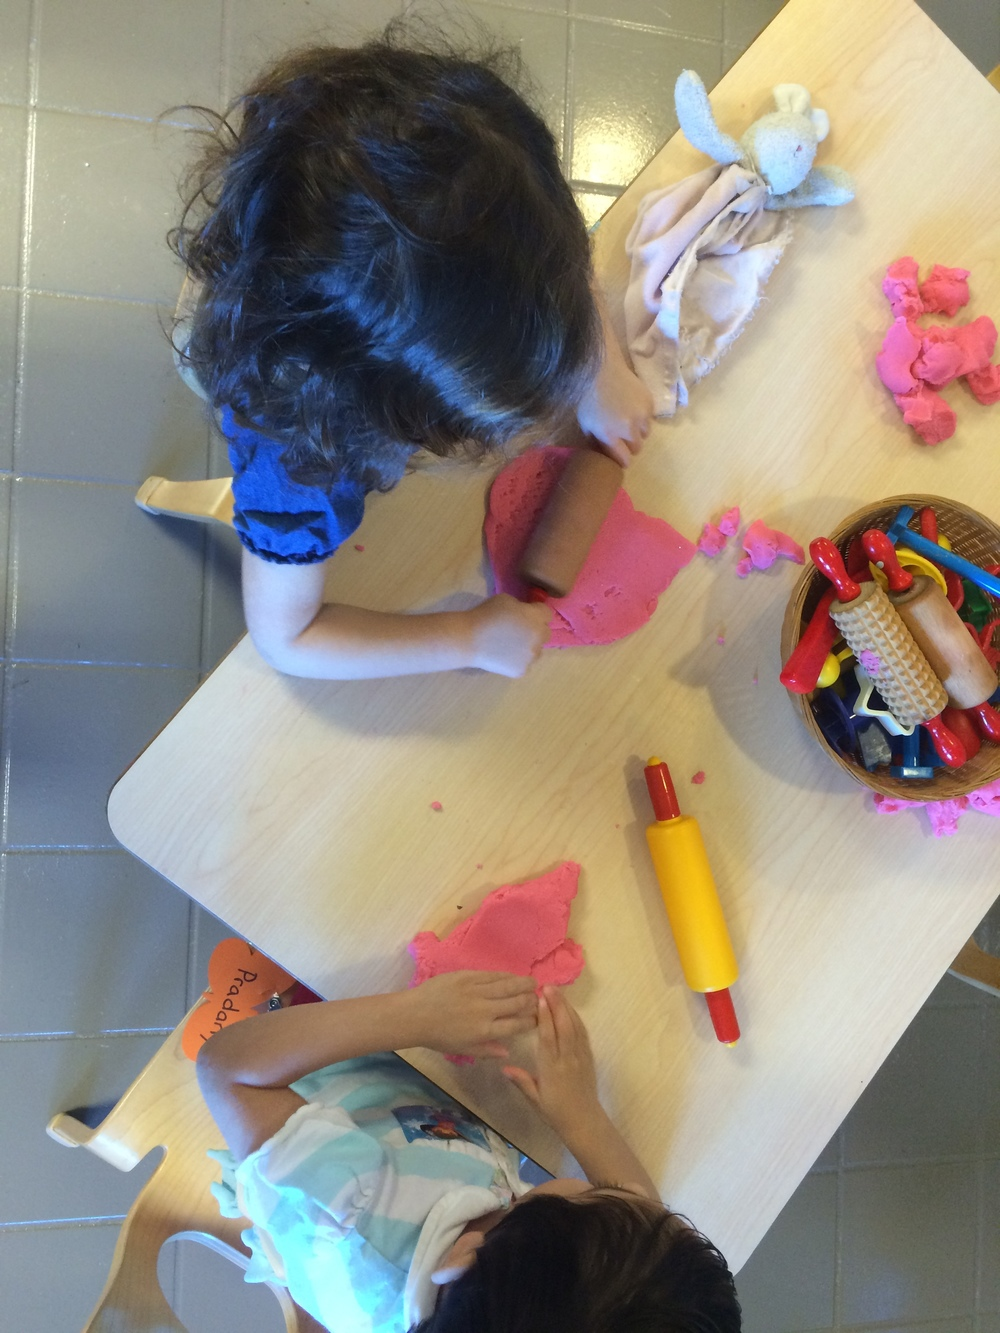 Play dough activities help strengthen little hands and imaginations!